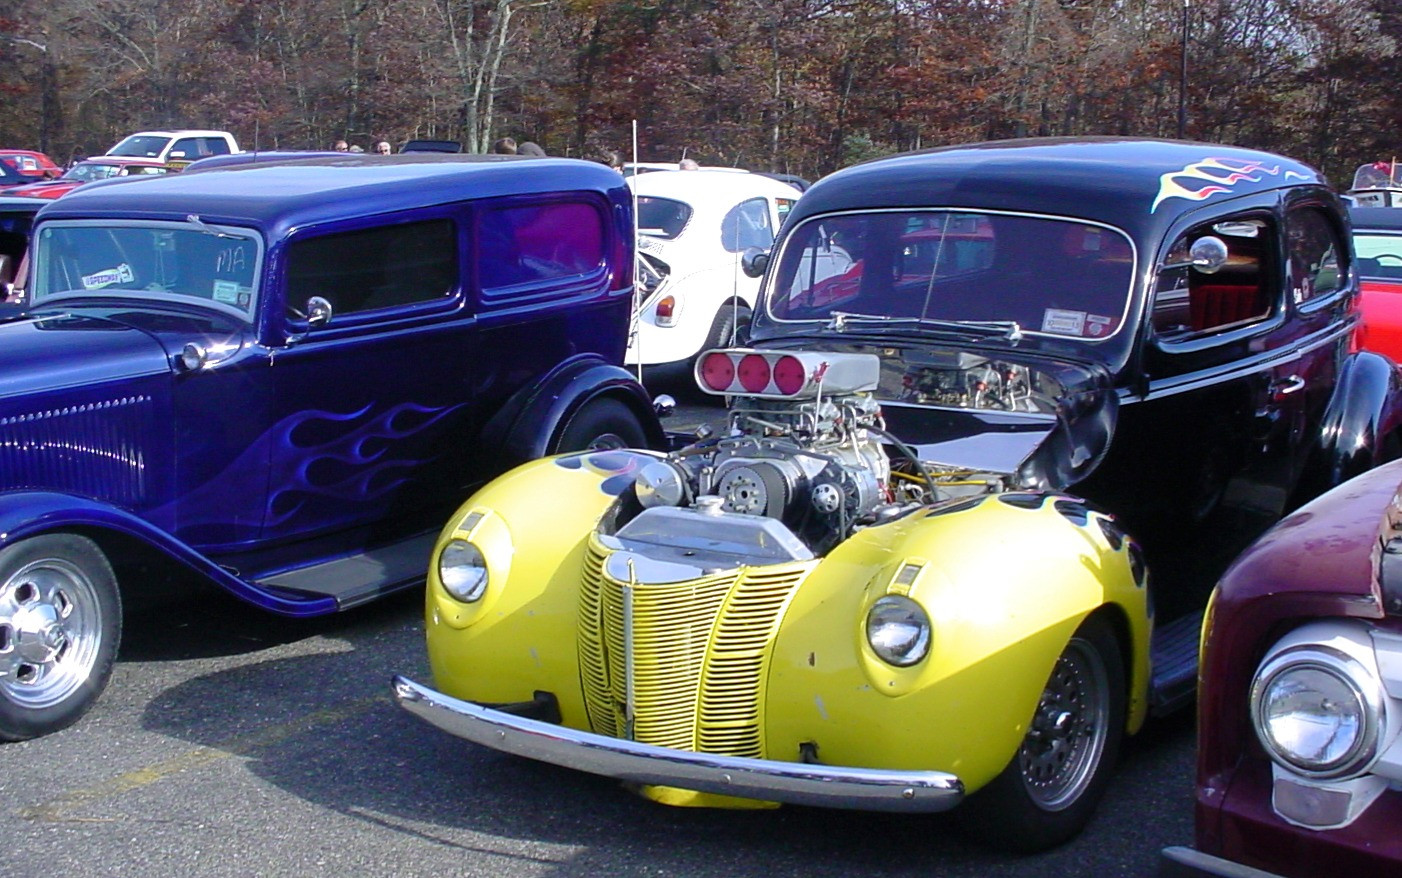 A pair of street rods